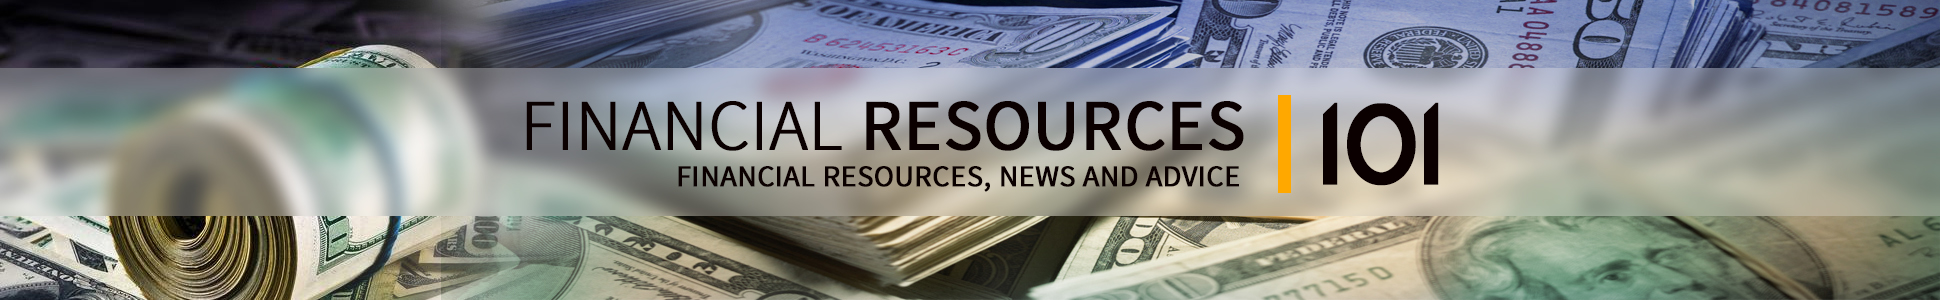 financialresources101-banner